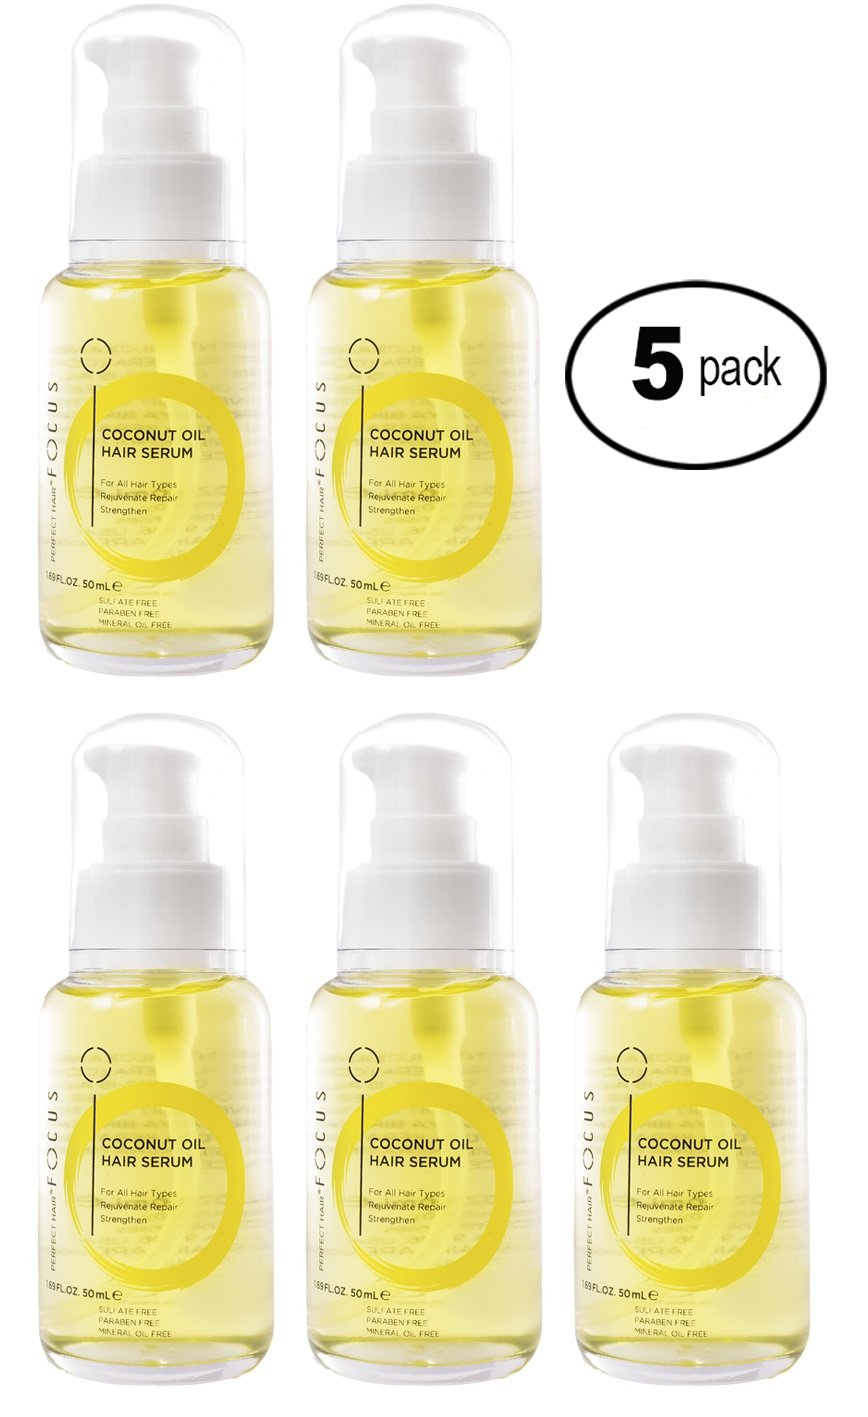 Coconut & Olive Oil Hair Serum - Scalp Treatment for Damaged Hair Enhanced with Aloe Vera Juice - Anti Frizz Hair Moisturizer Hydrates & Adds Elasticity - 50ml (5 Pack)